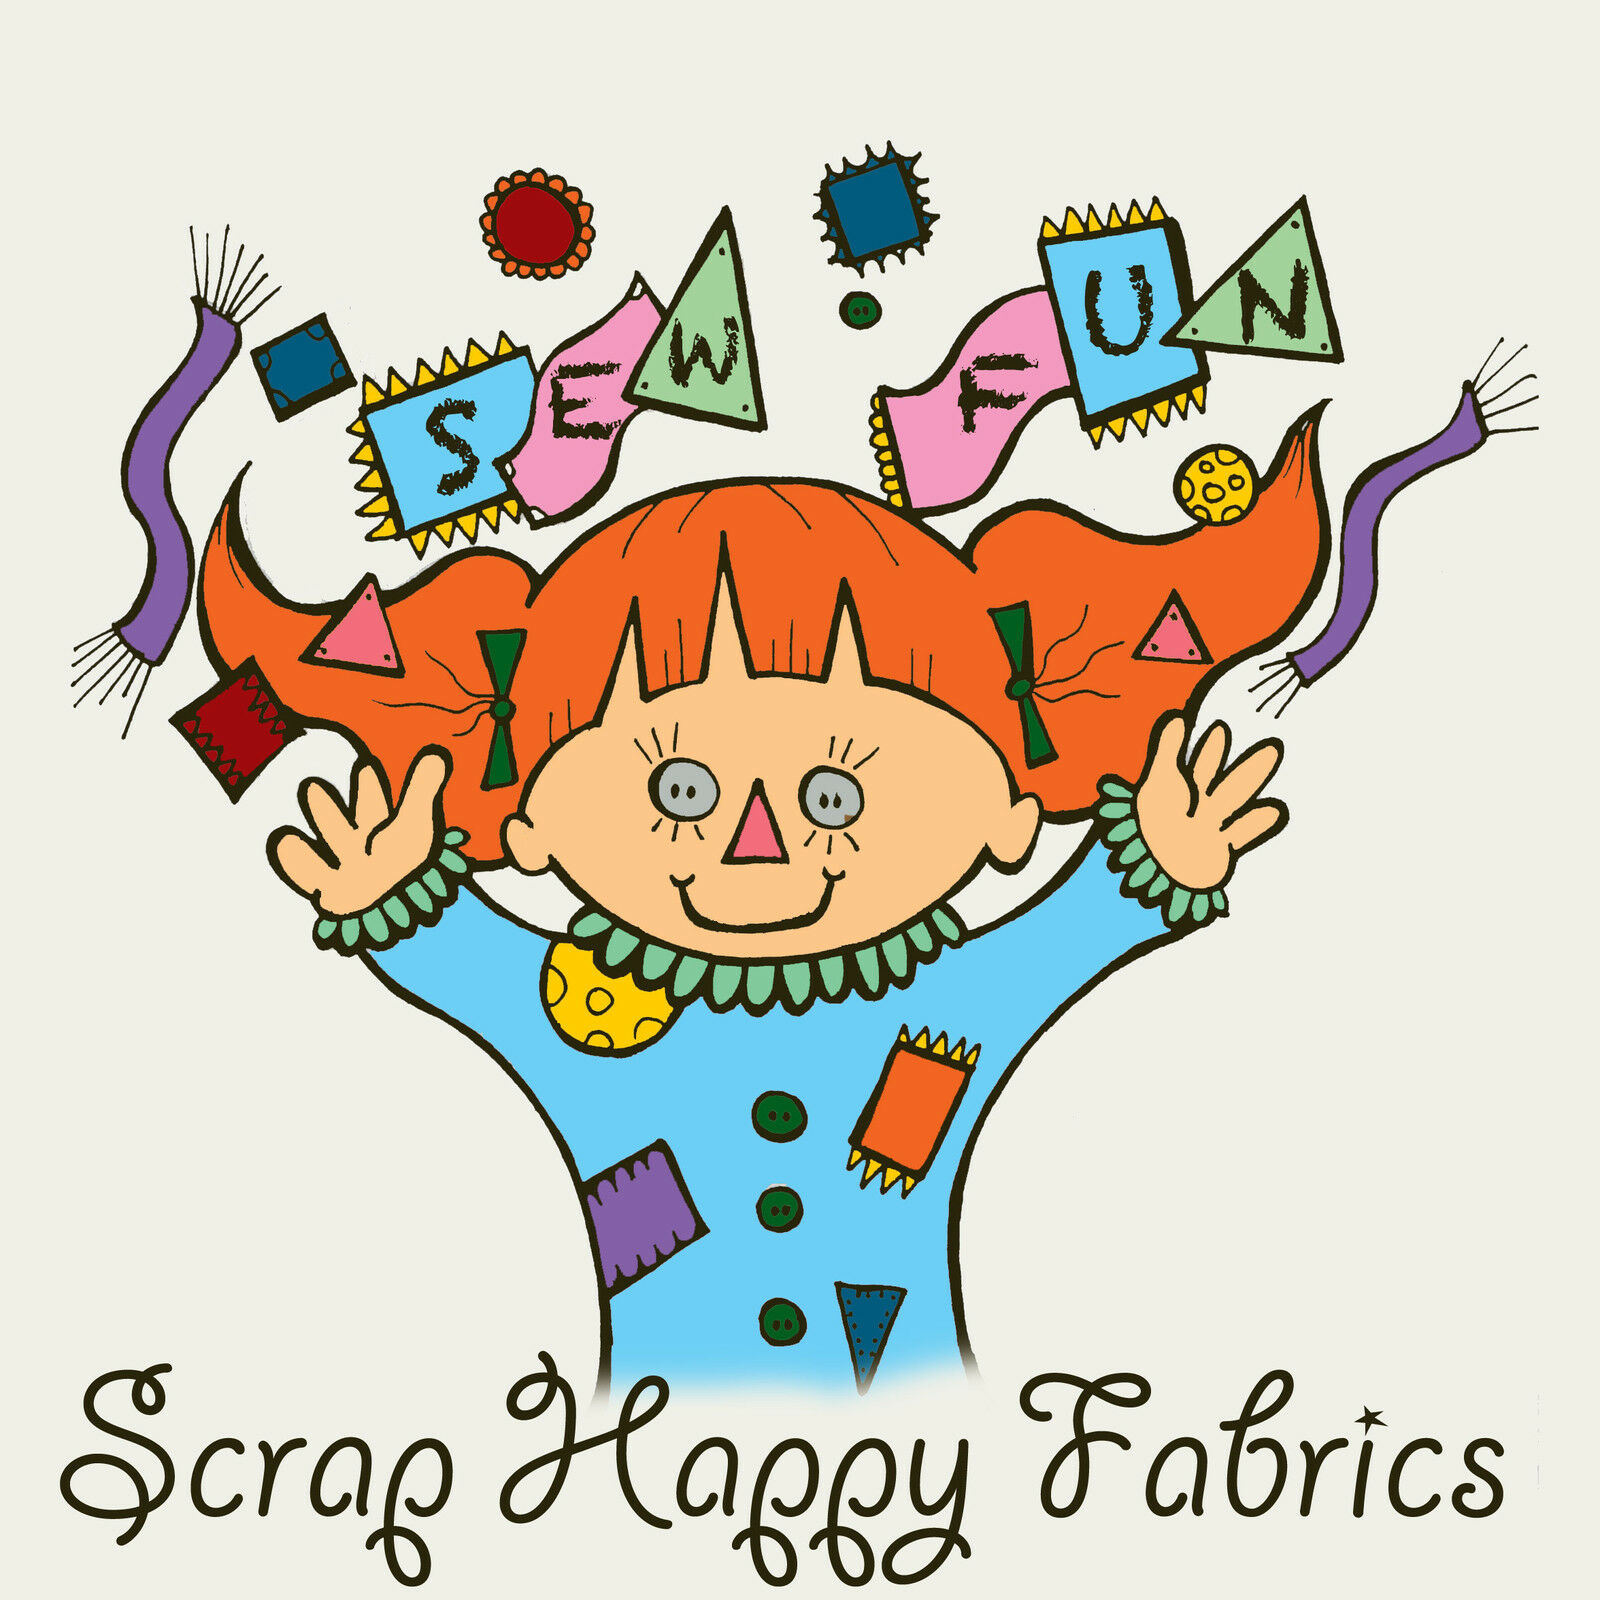 Your Scrap Happy Fabrics